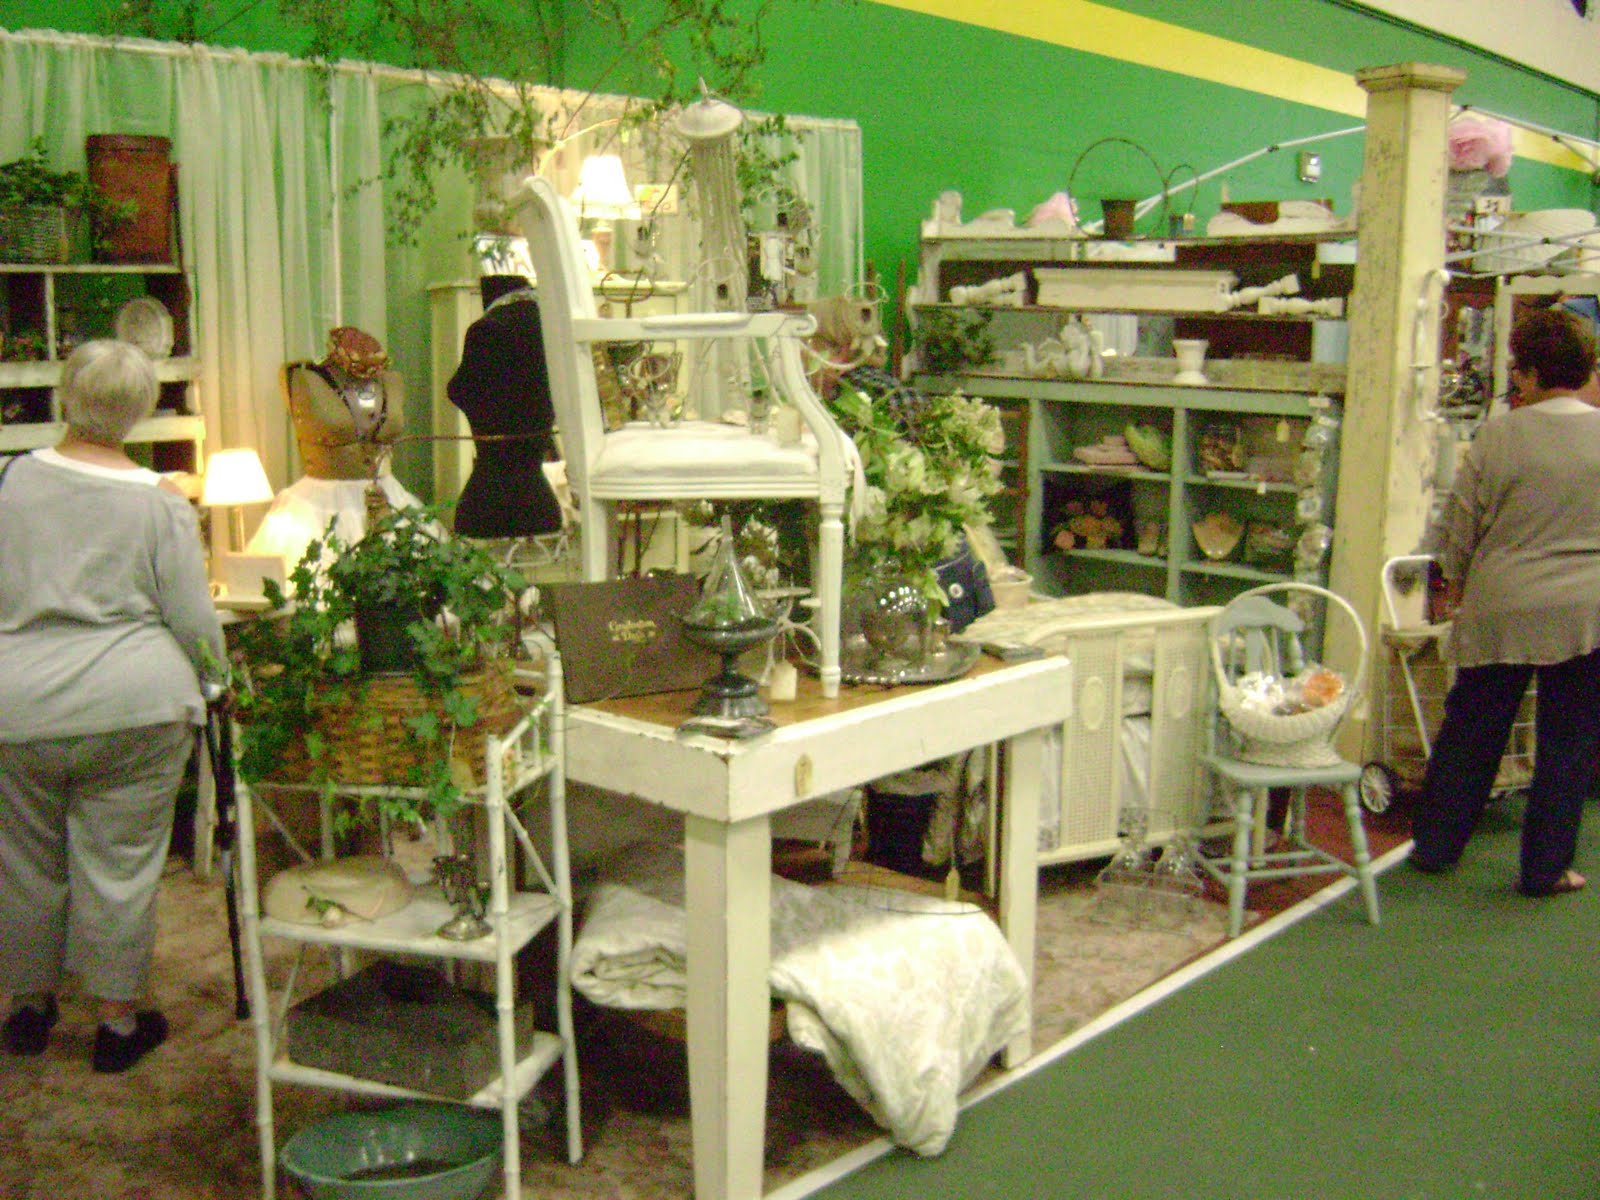 Amy's vintage cottage: Funky Junk fun for all!